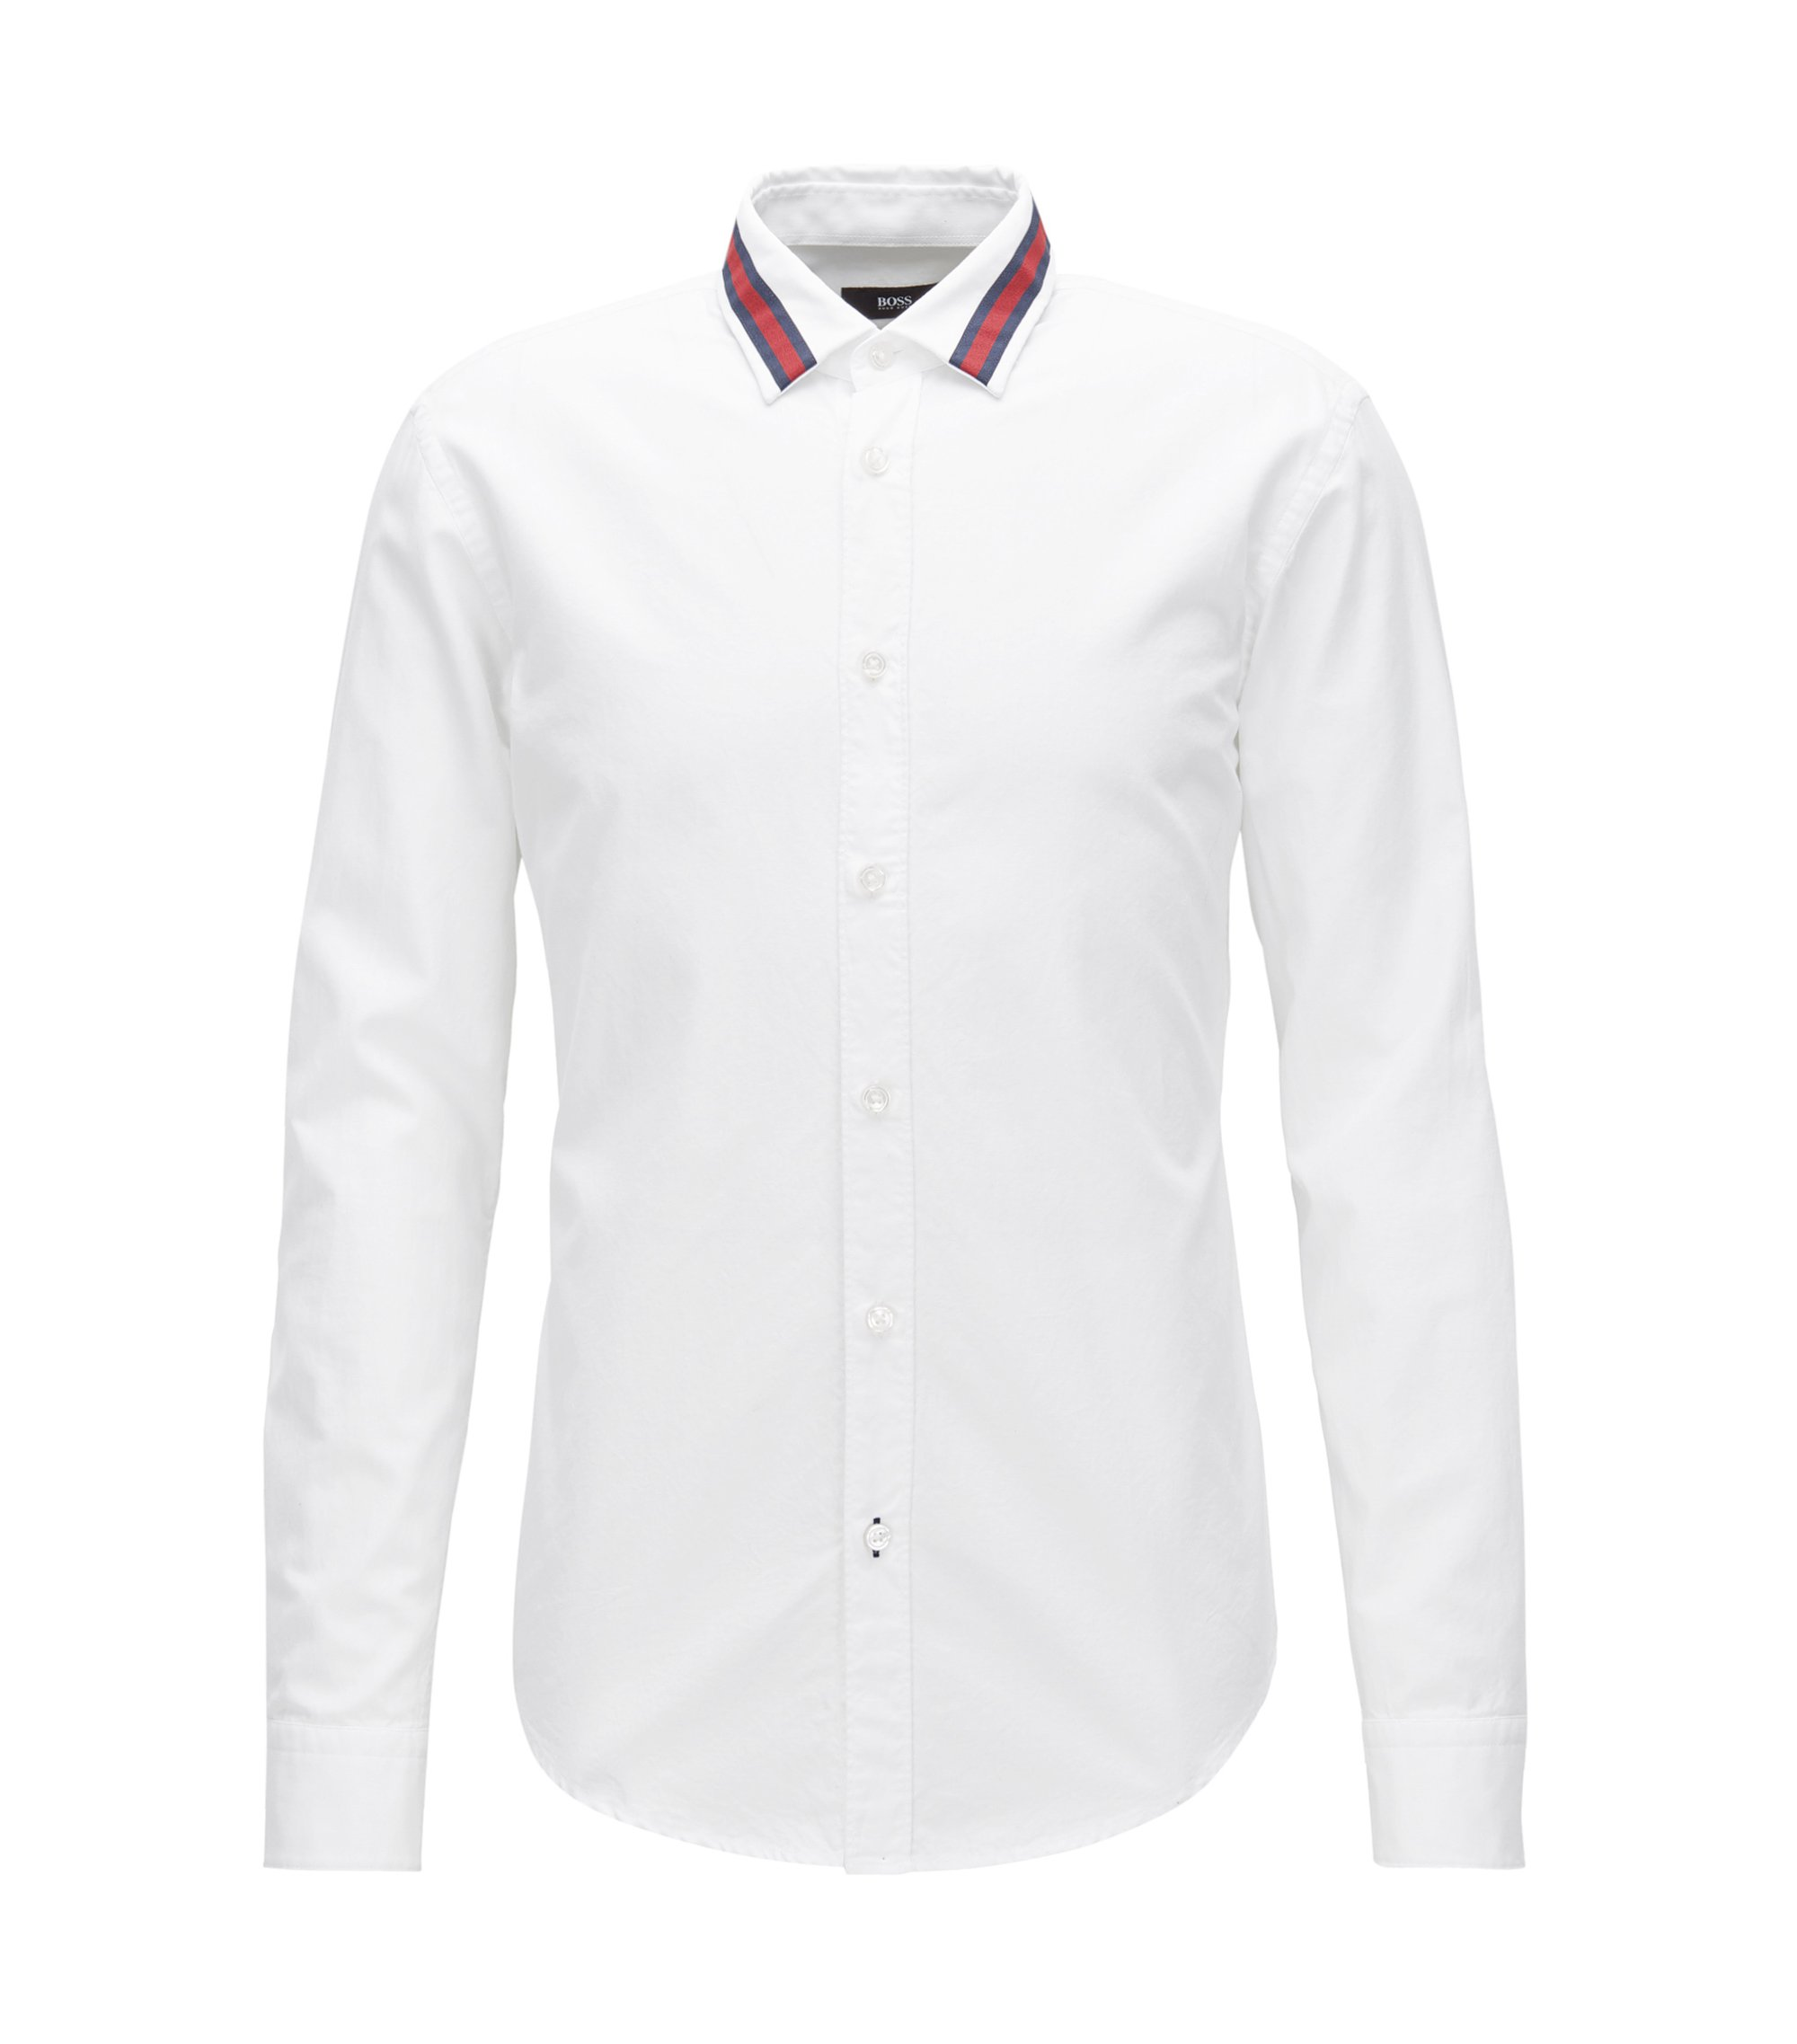 Grosgrain Oxford Button Down Shirt, Slim Fit | Ronni R, White